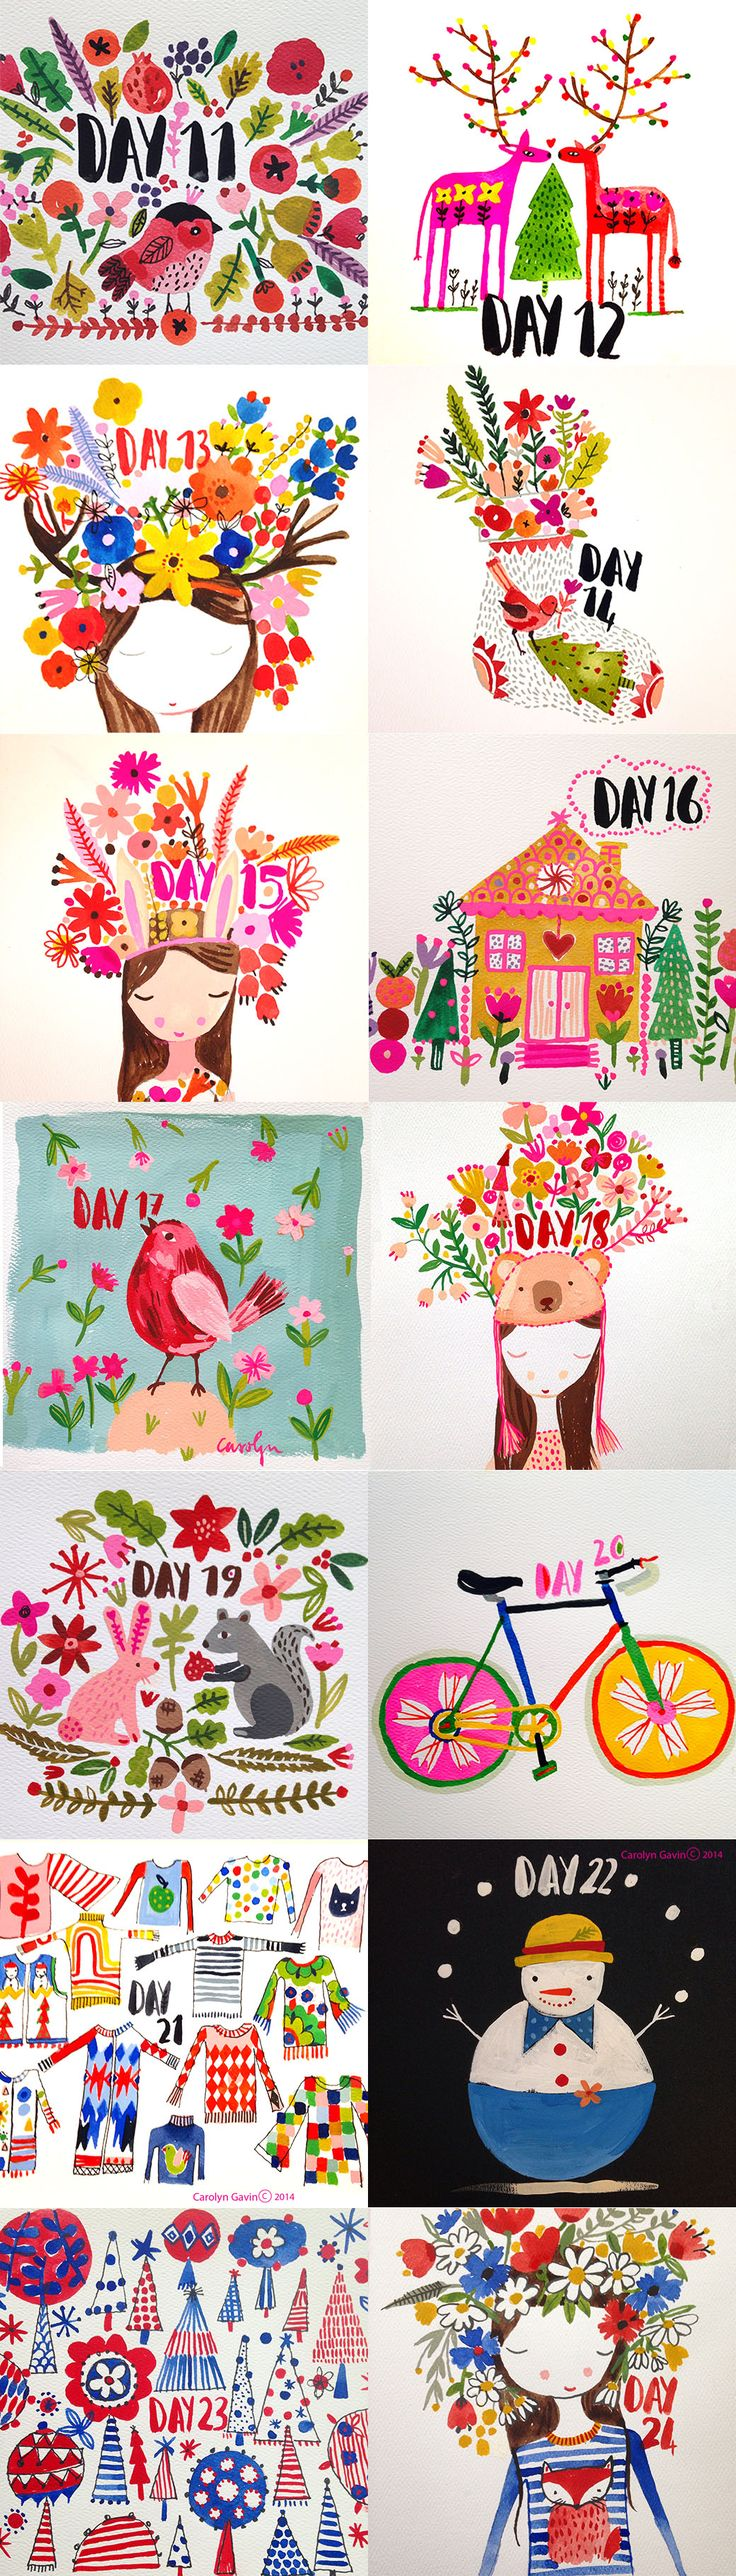 Christmas Calendar Illustration : Best ideas about may calendar on pinterest